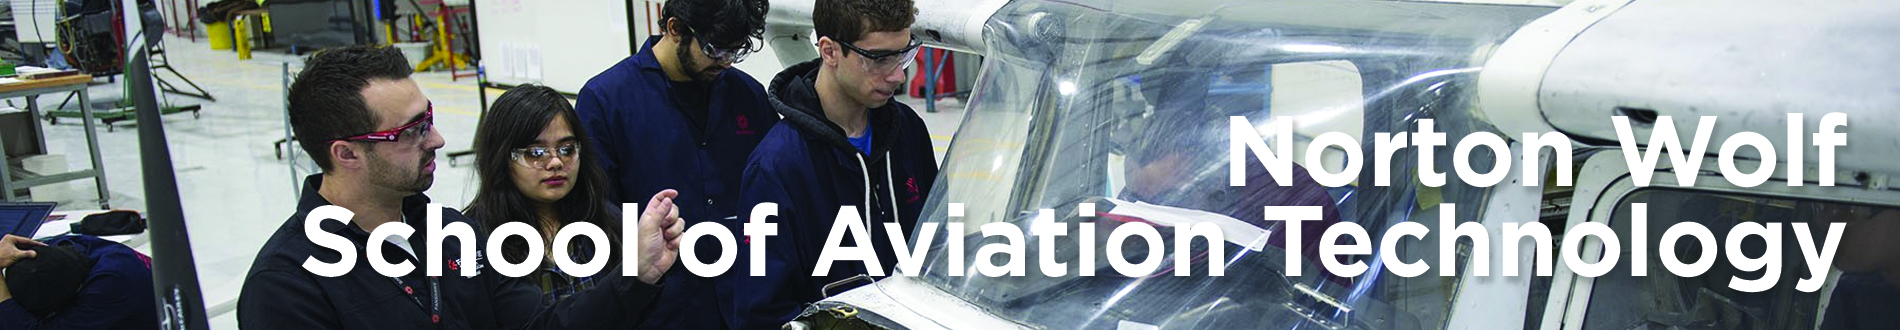 Faculty & Staff Publications - Aviation Technology